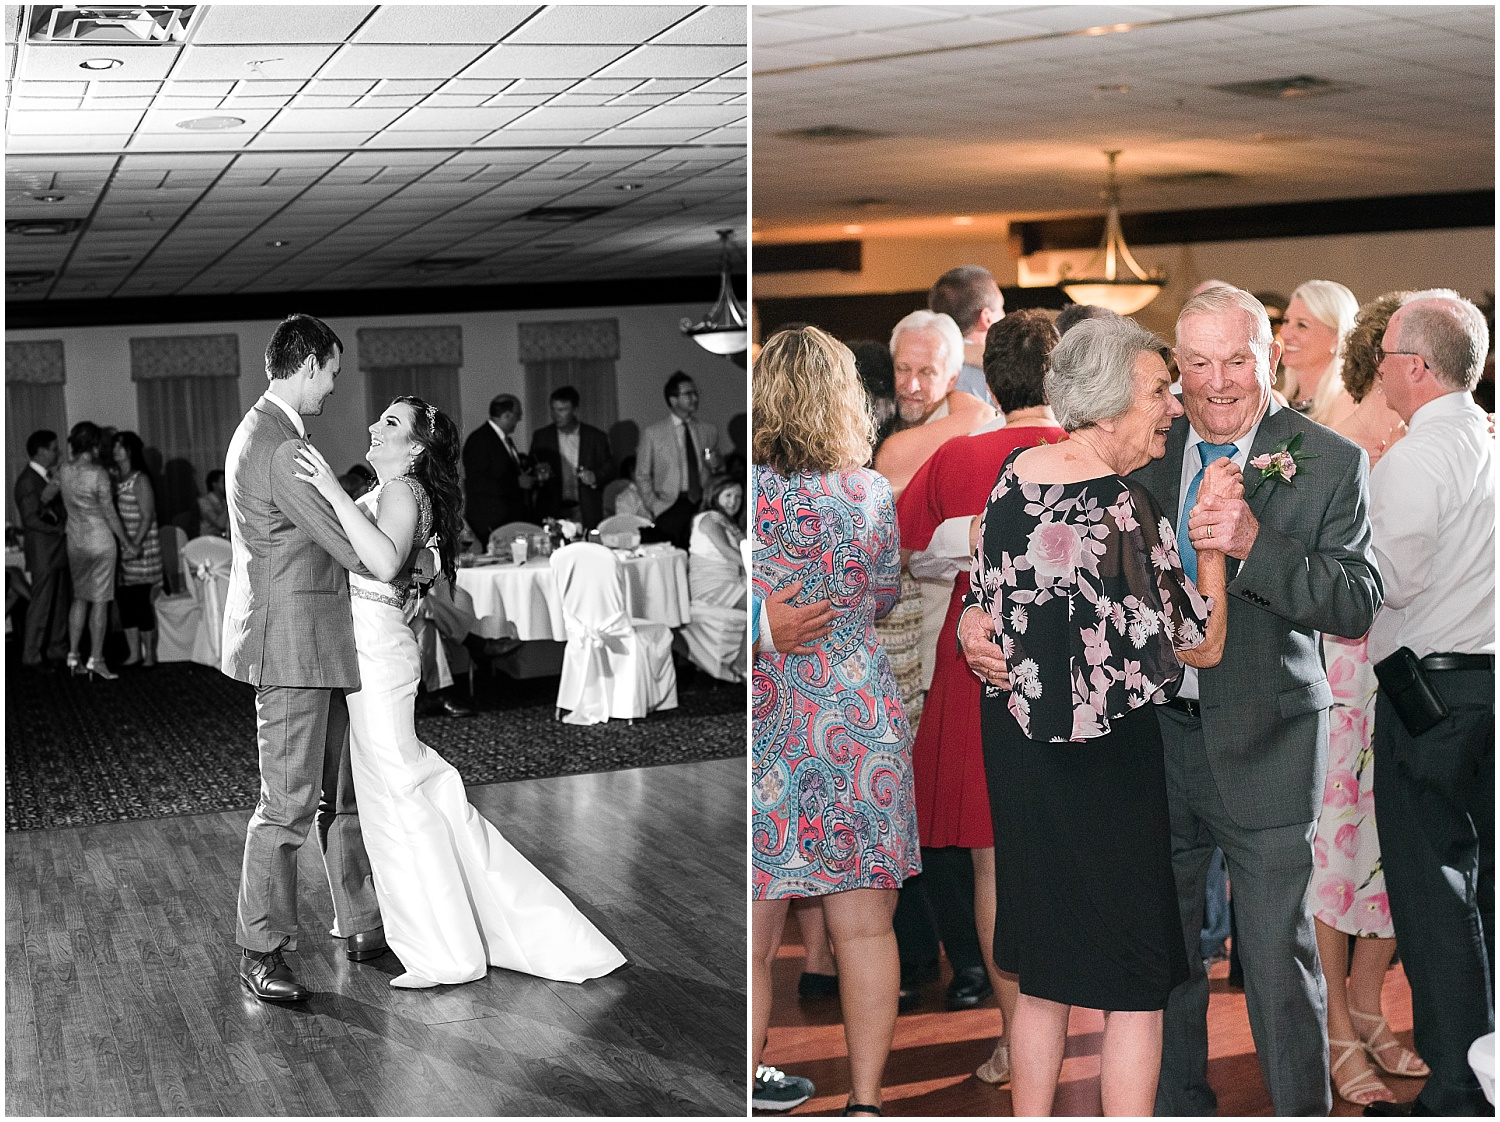 Aren't Jeremy's grandparents the cutest?!  They out-danced everyone in the anniversary dance!